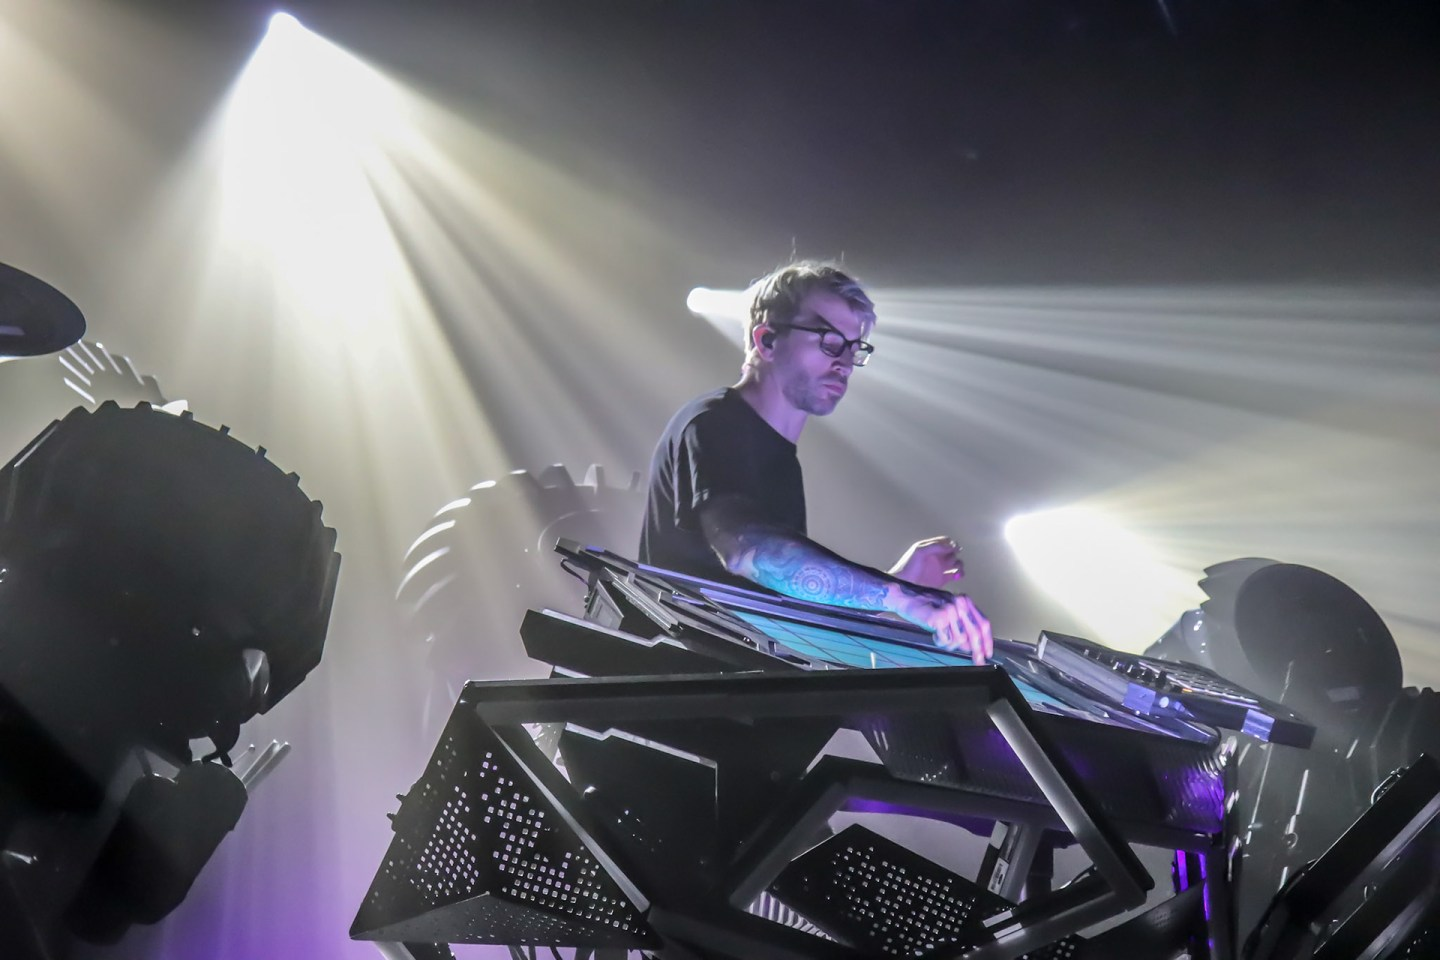 Ooah plays on The Blade 2.0 during The Glitch Mob's See Without Eyes tour